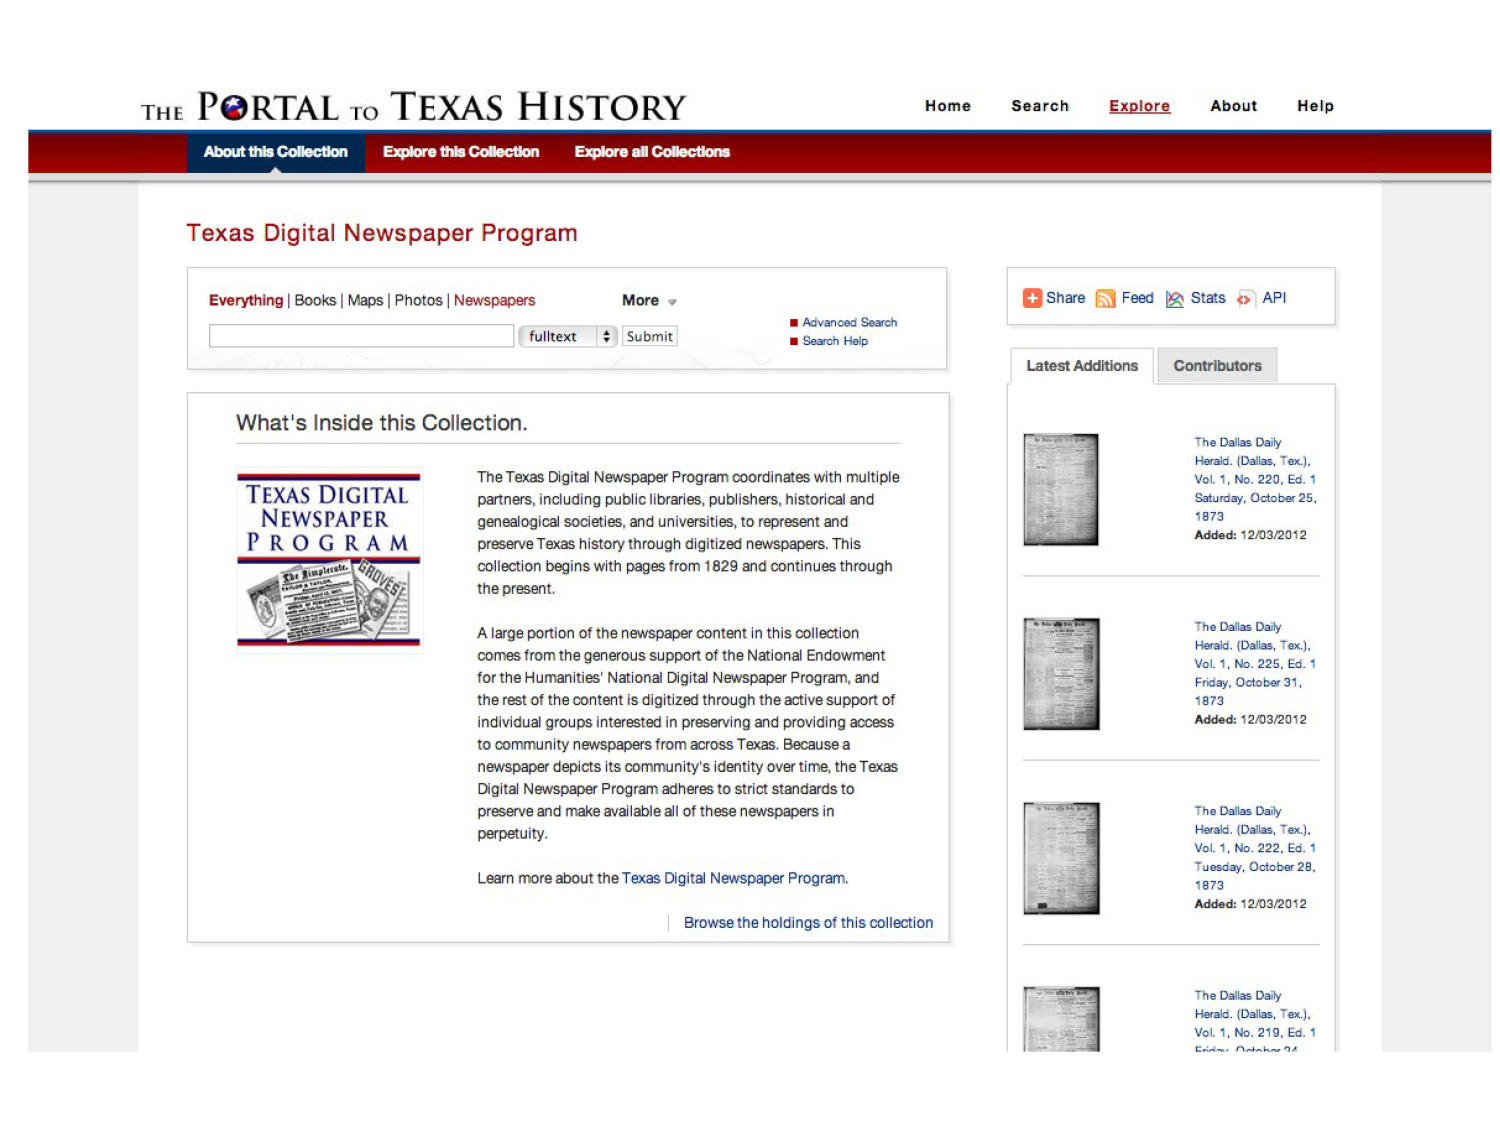 The Portal to Texas History: Technology Overview                                                                                                      [Sequence #]: 54 of 73